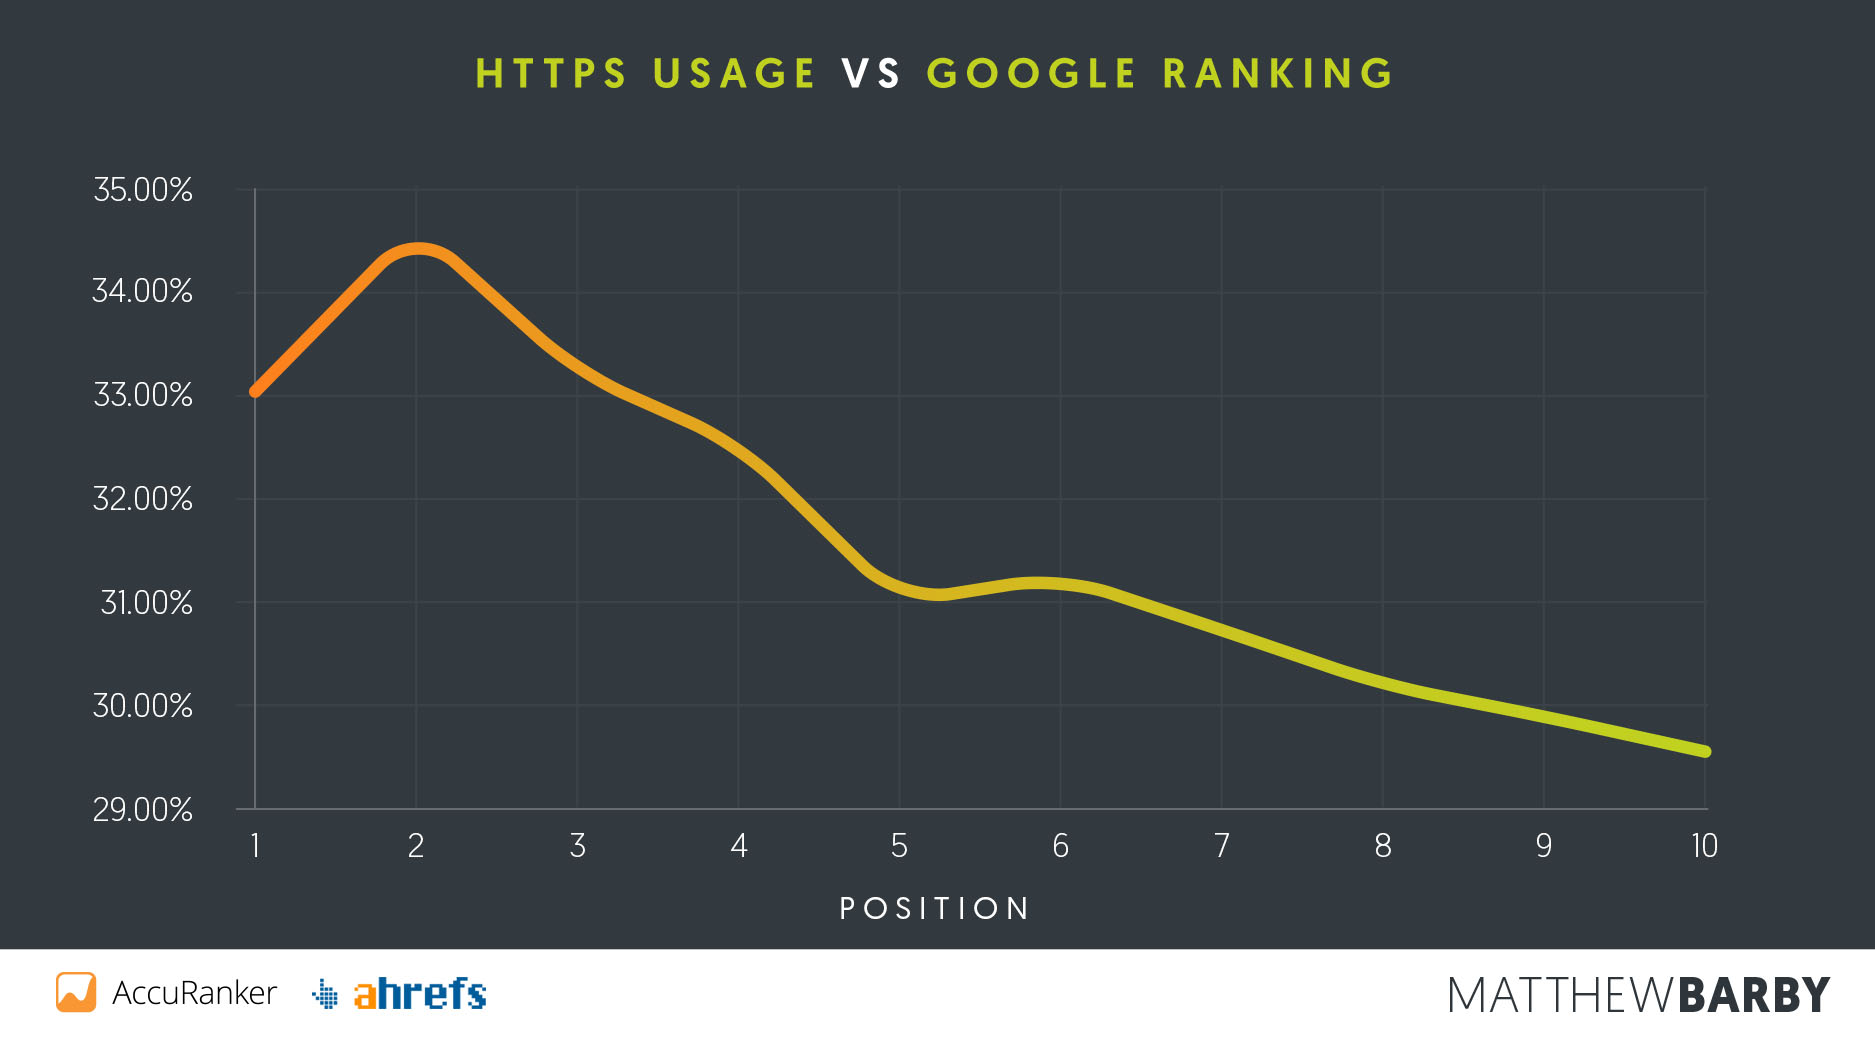 HTTPS Usage vs Google Position - Matthew Barby SEO Study